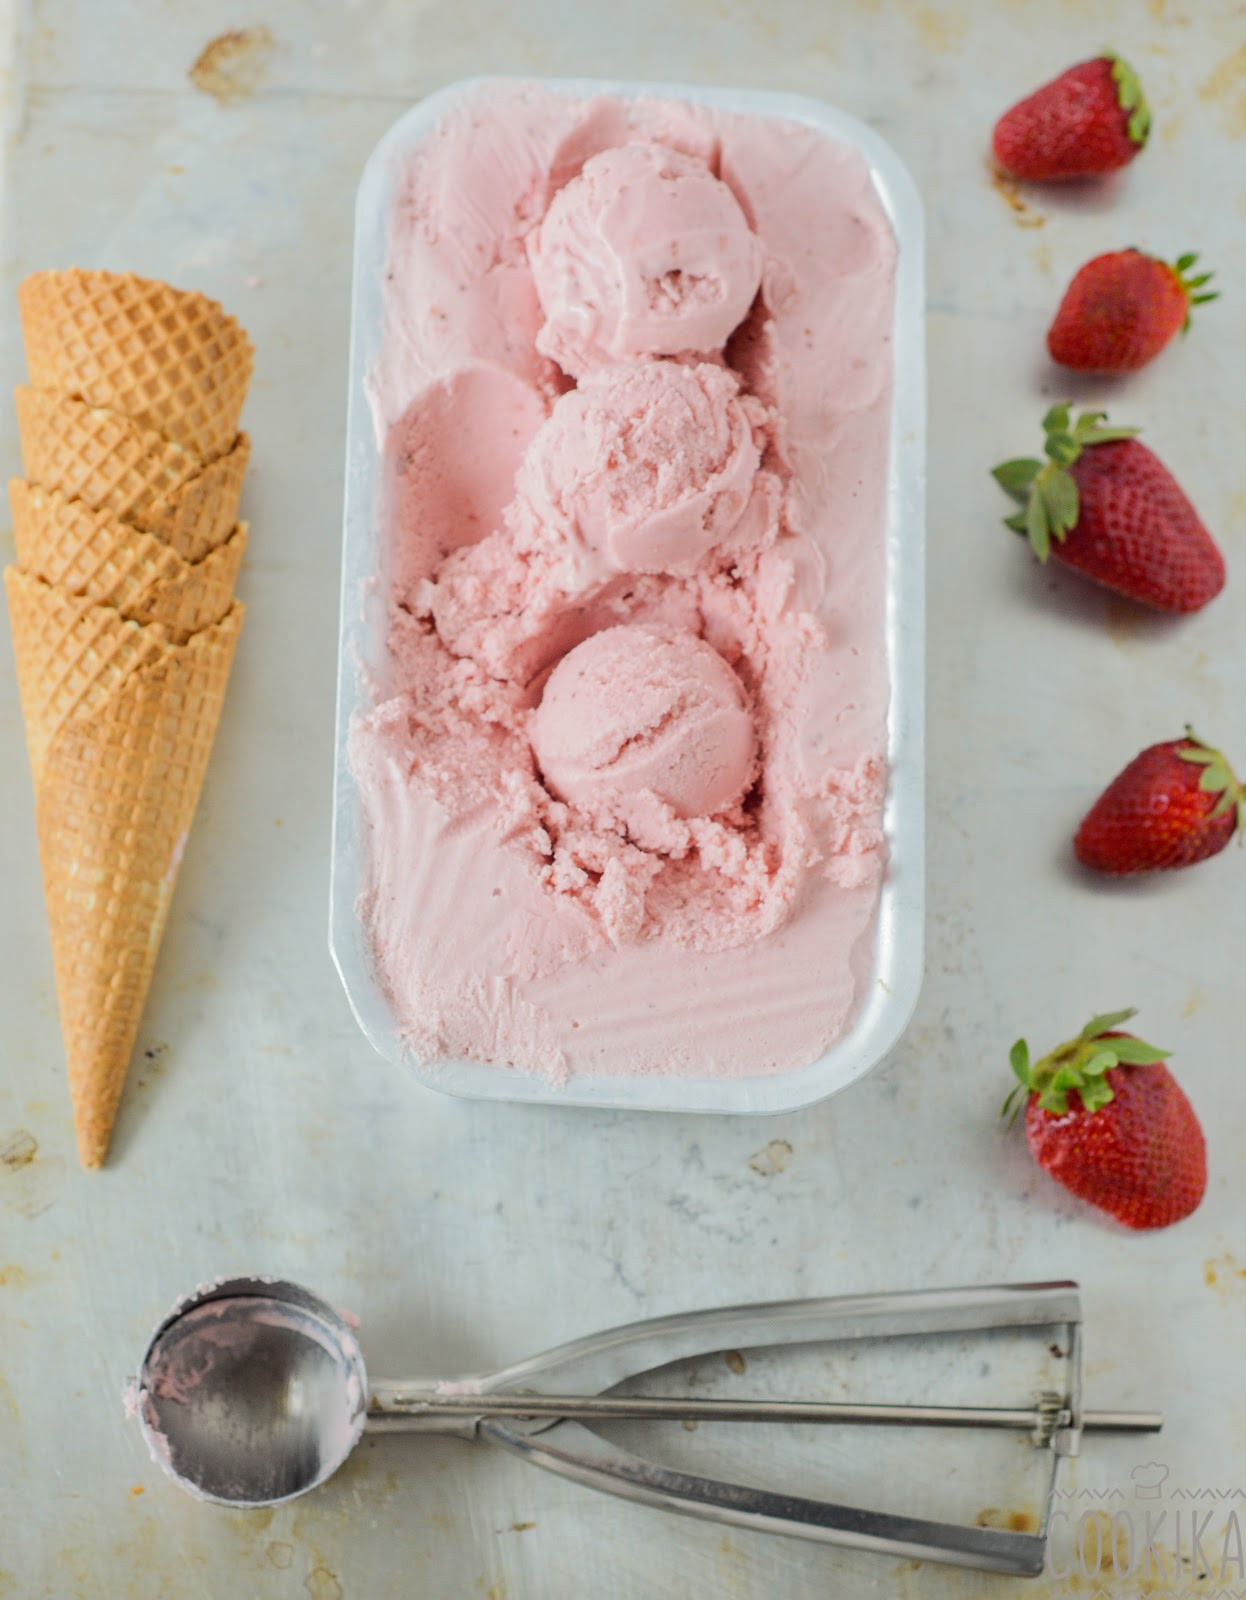 Roasted Strawberries Ice Cream